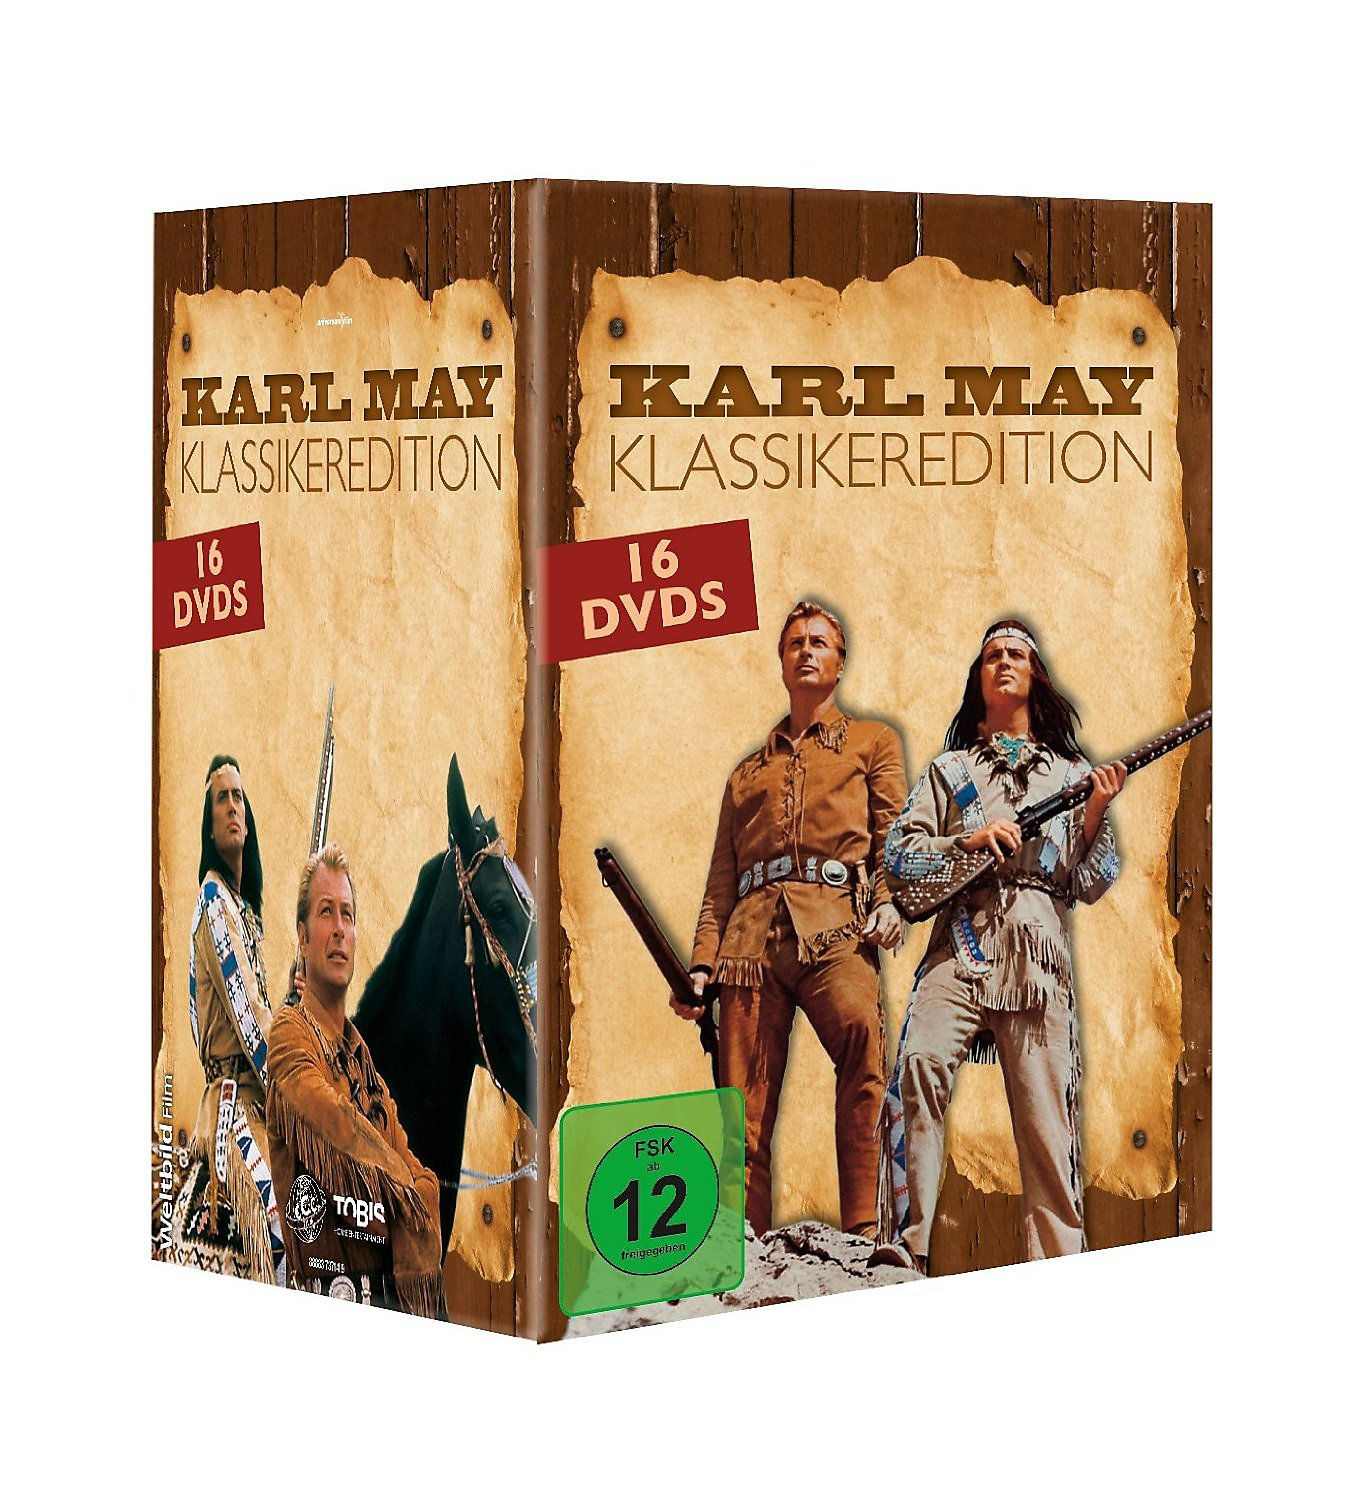 Karl May Klassikeredition Dvd Bei Weltbildde Bestellen